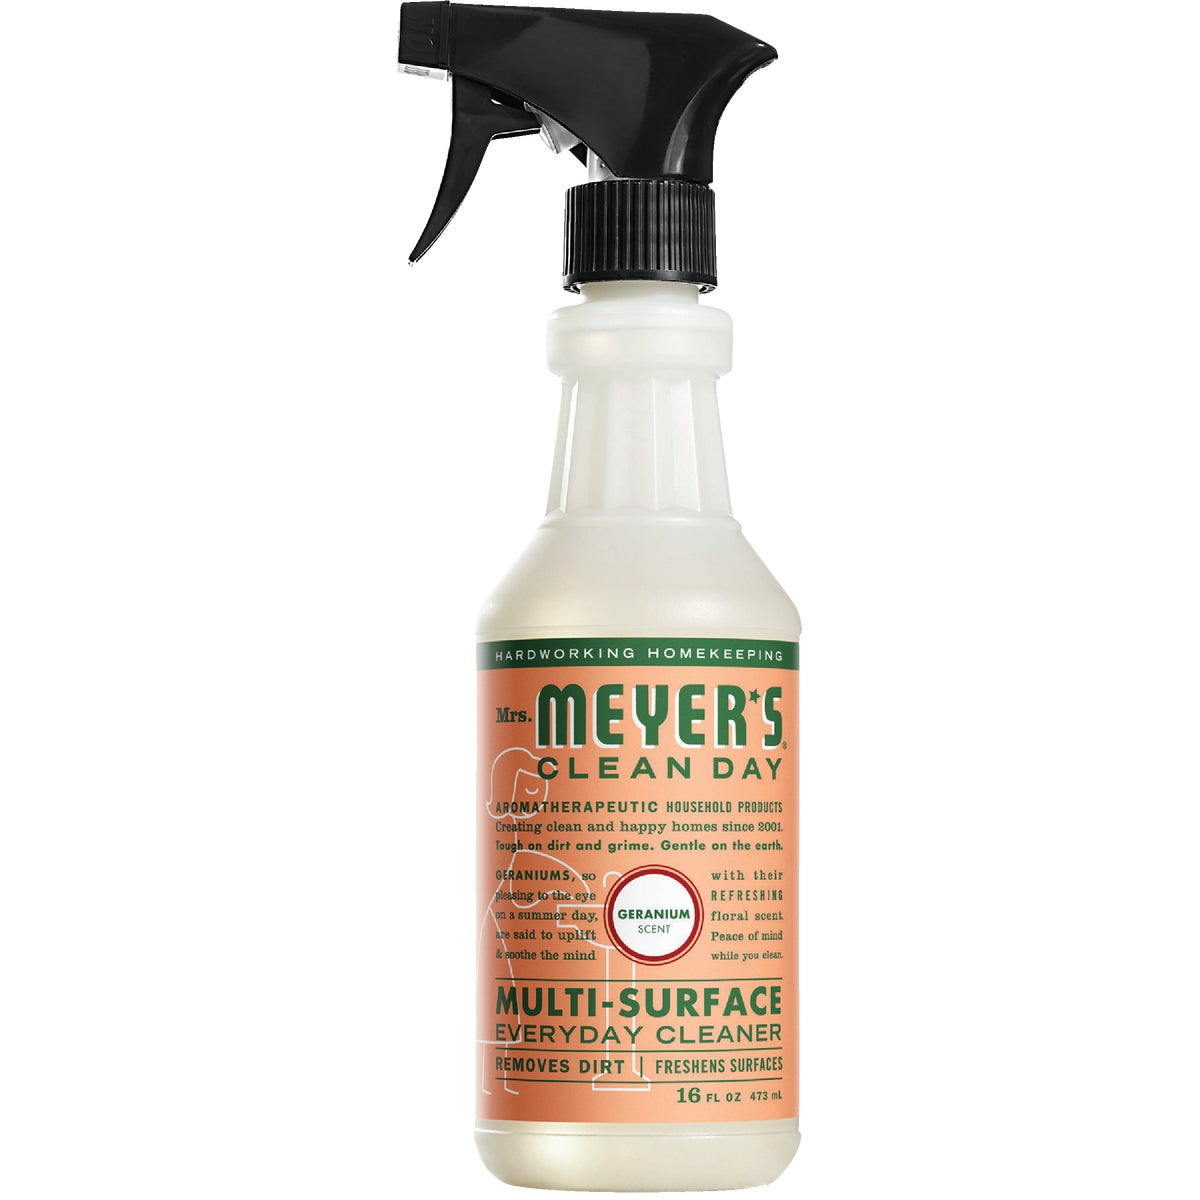 GERAN COUNTERTOP CLEANER - 13118 by Mrs Meyers Clean Day